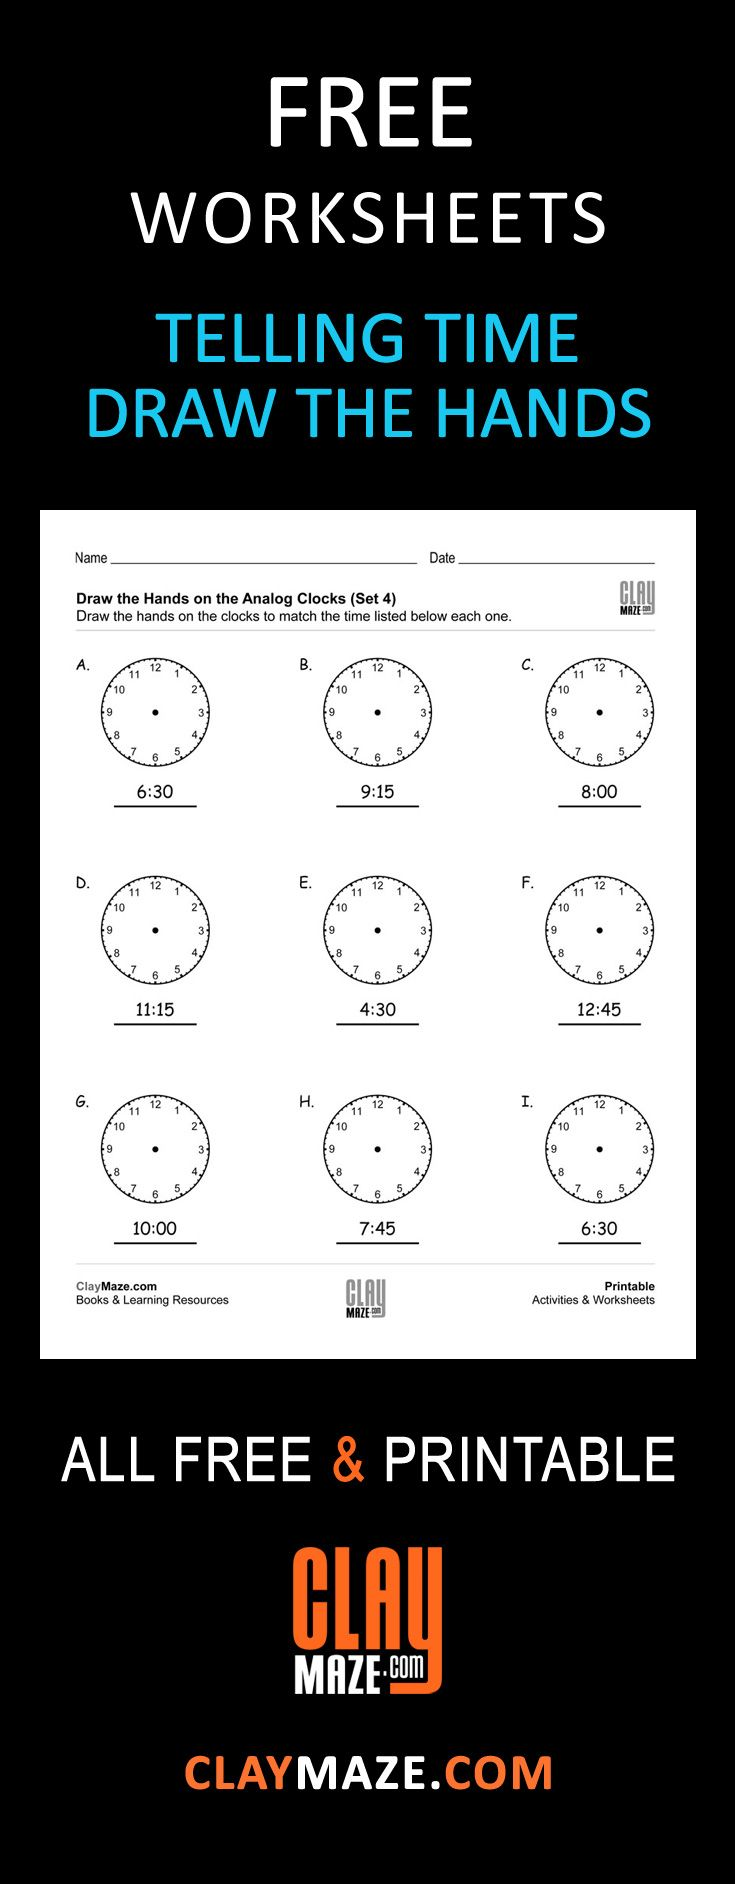 Free Printable Telling Time Practice Worksheet With Analog Clocks In This One The Student Is Asked To Draw Analog Clock Time Worksheets Telling Time Practice Maths worksheets fractions of amounts